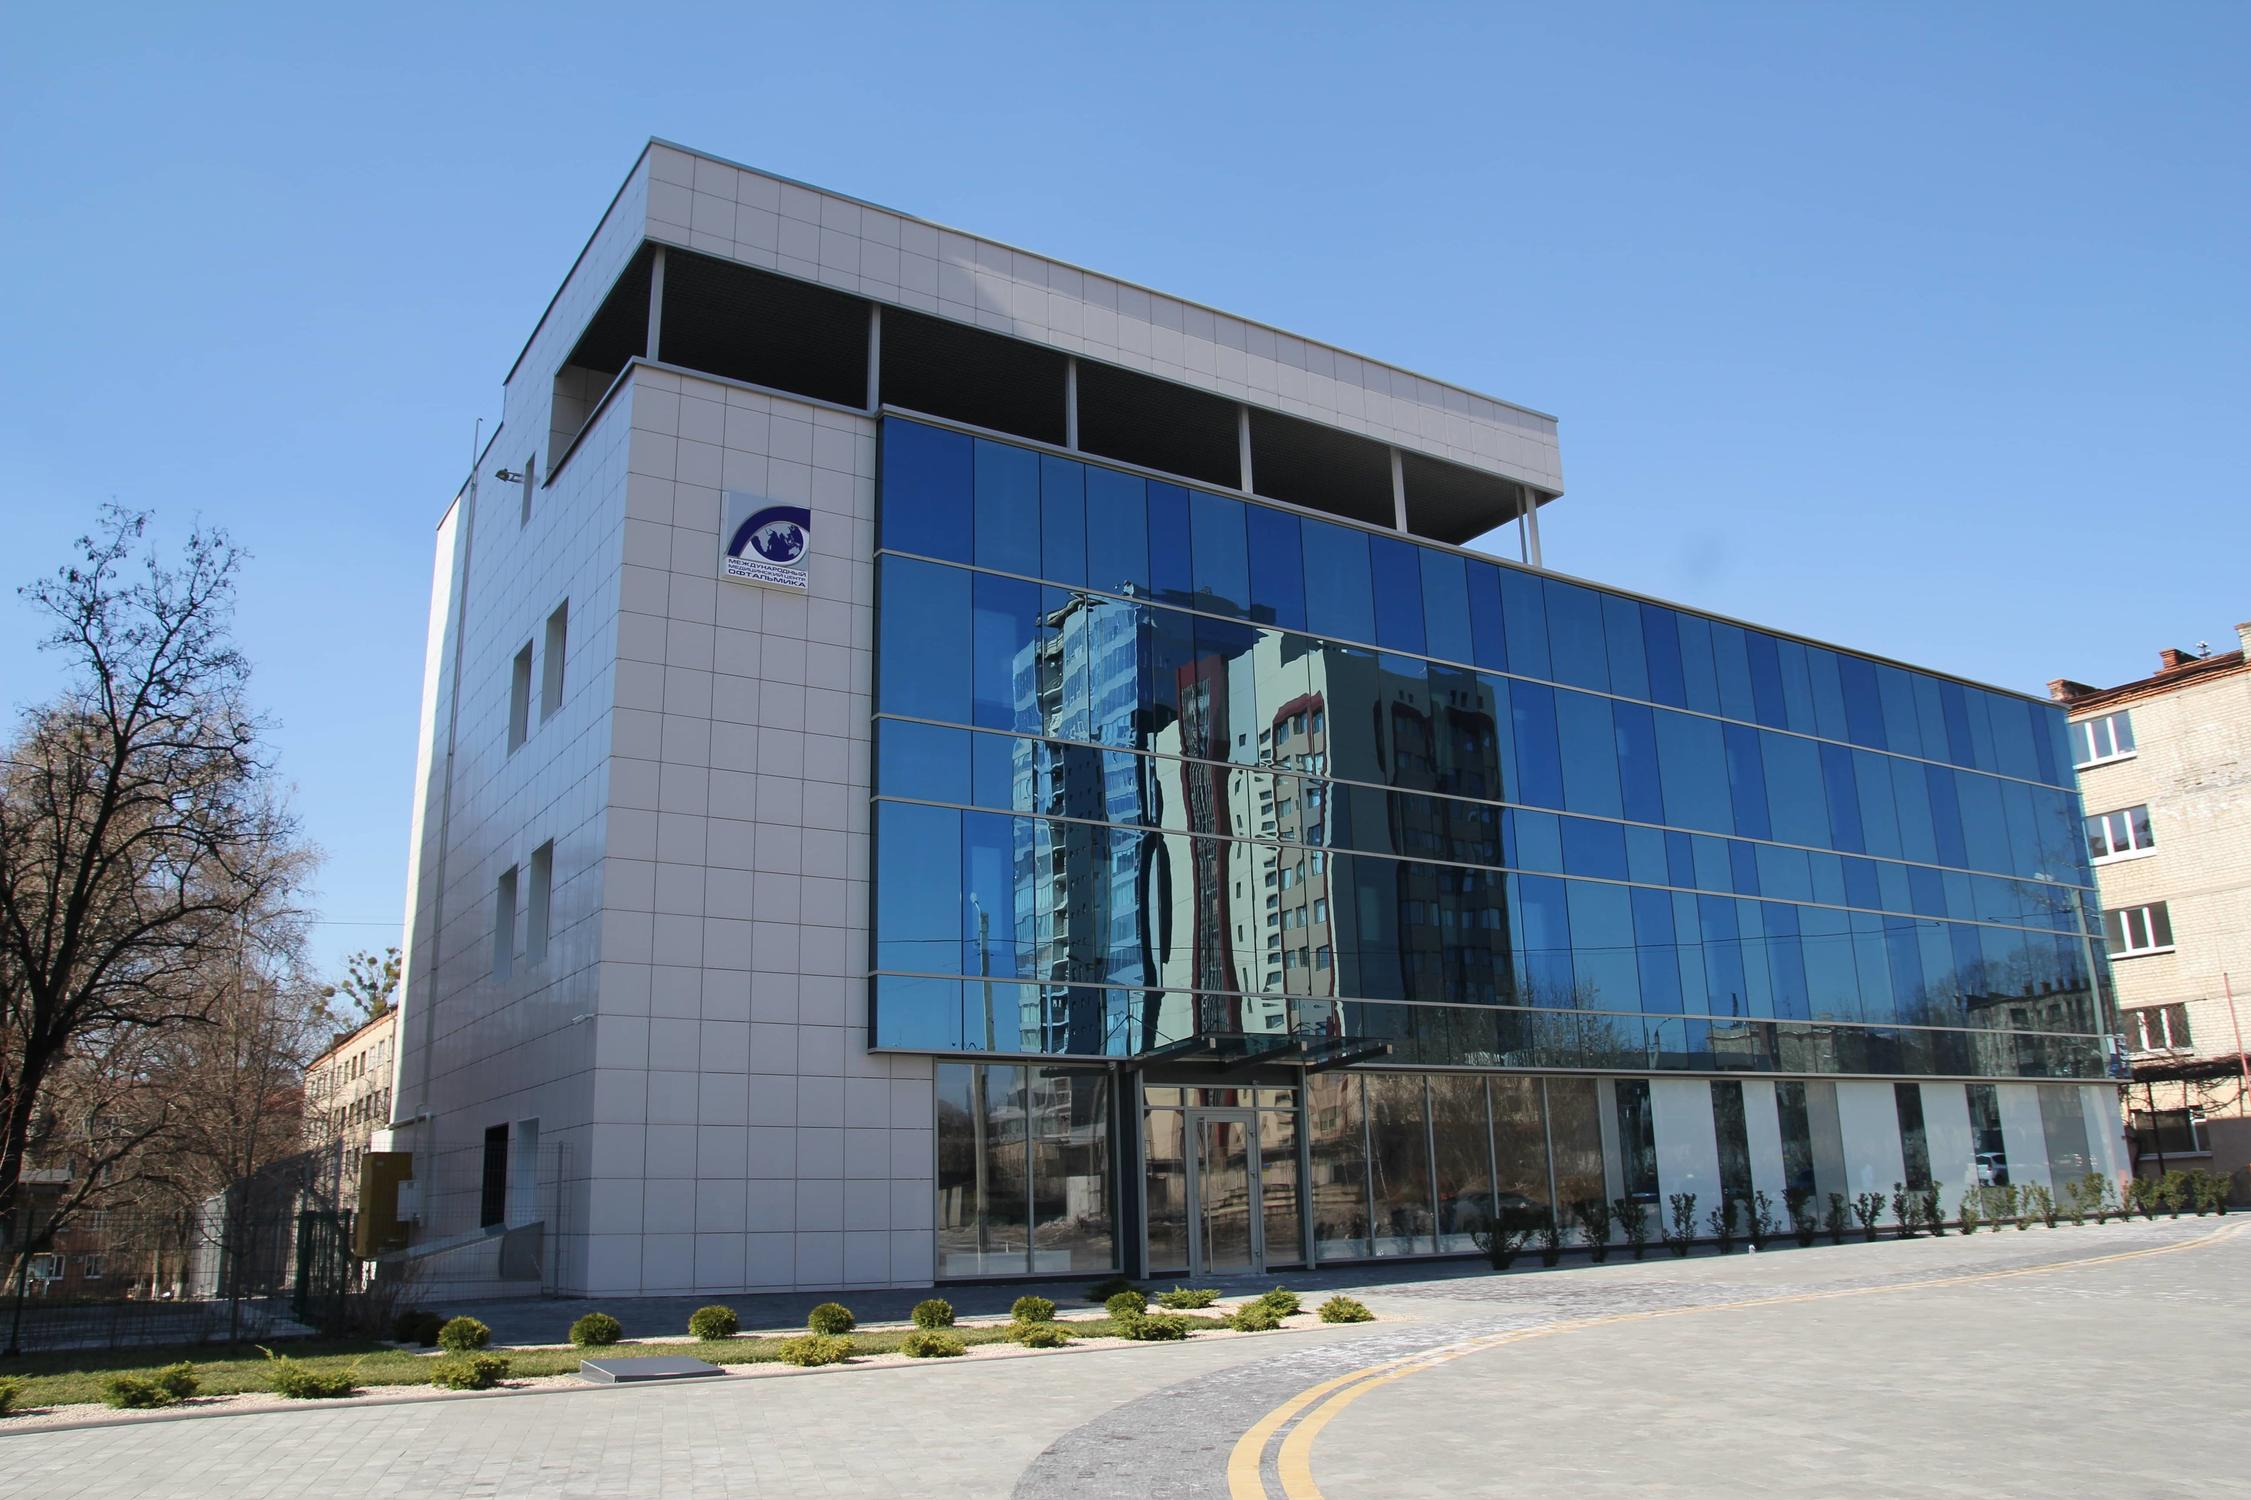 The building of the international medical center ophthalmic